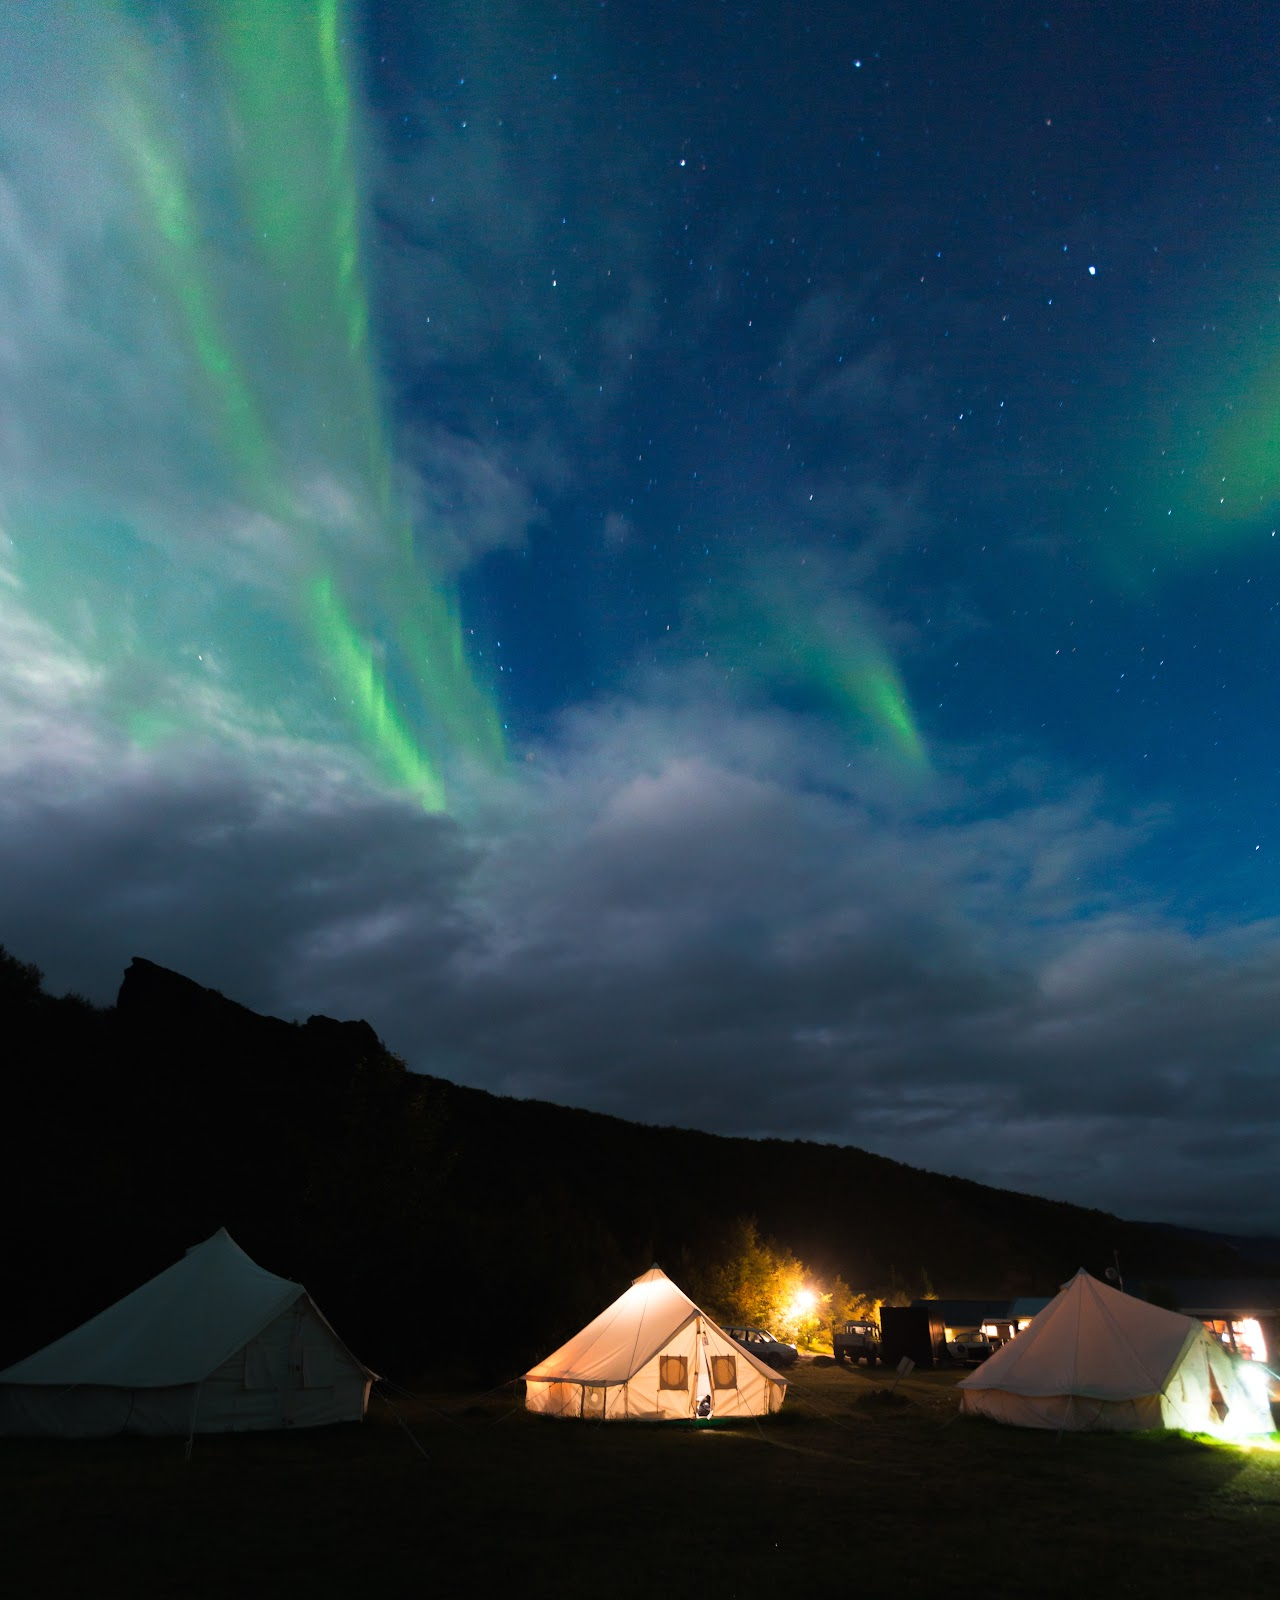 Glamping tents under Northern Lights